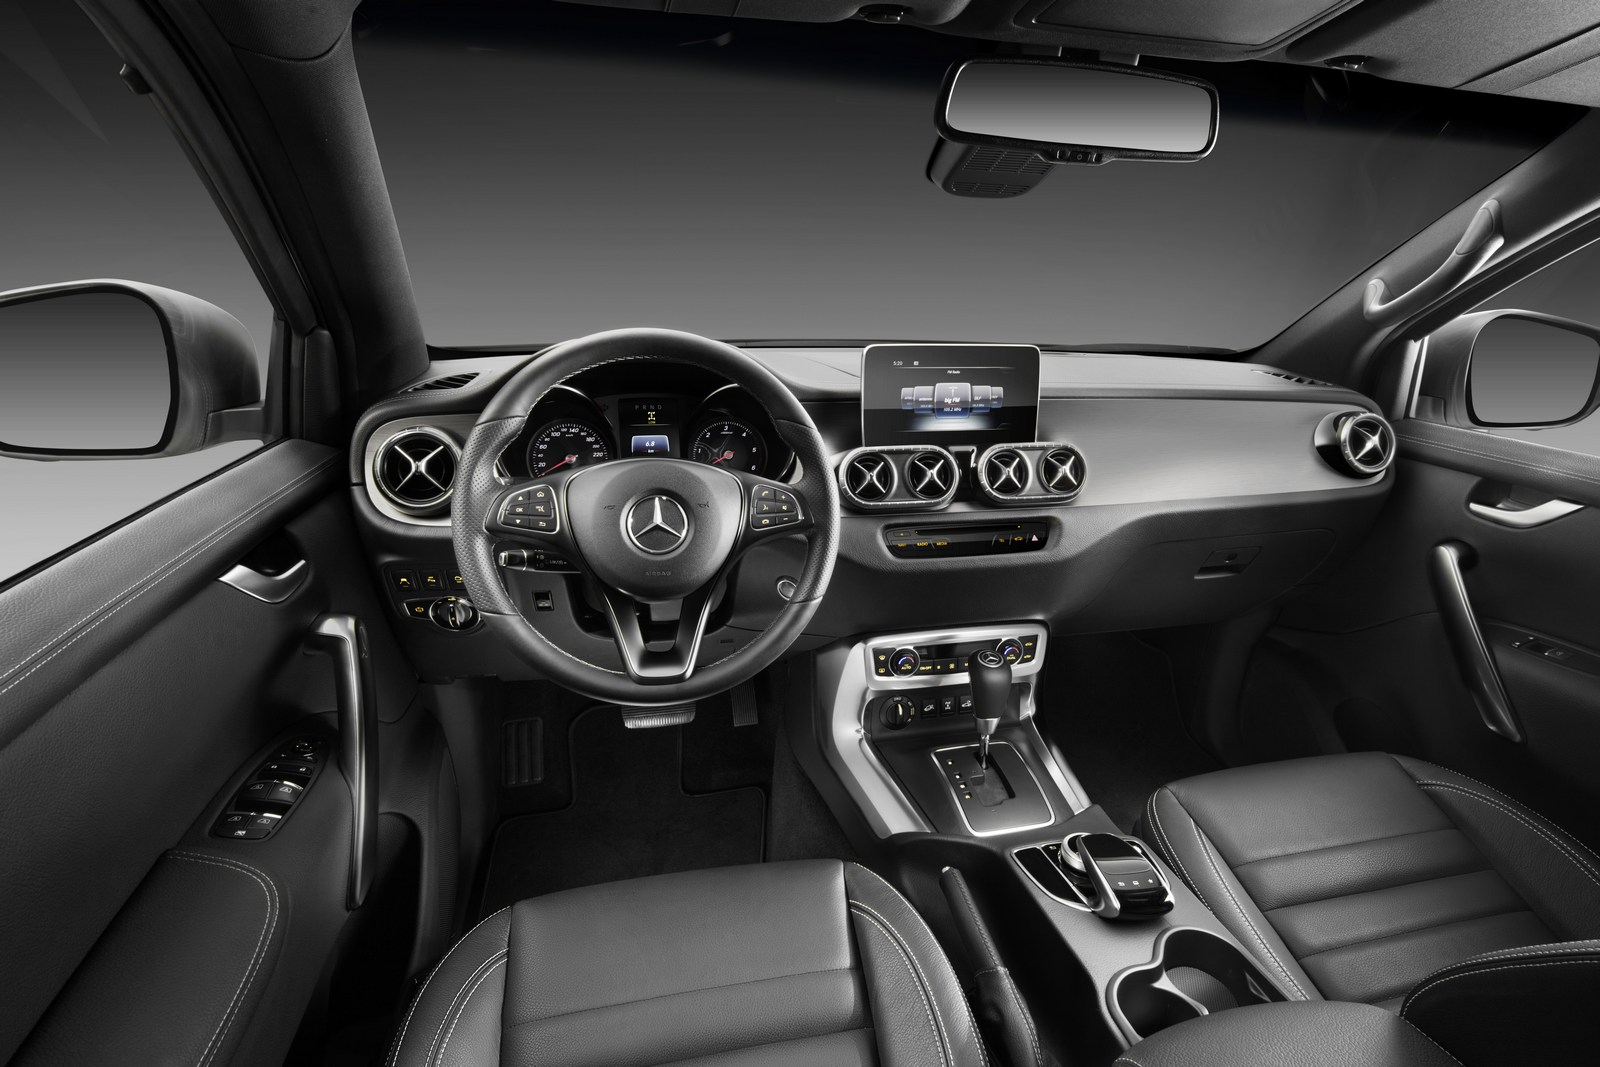 Mercedes-Benz X-Klasse – Interieur, Ausstattungslinie POWER   Mercedes-Benz X-Class – Interior, design and equipment line POWER